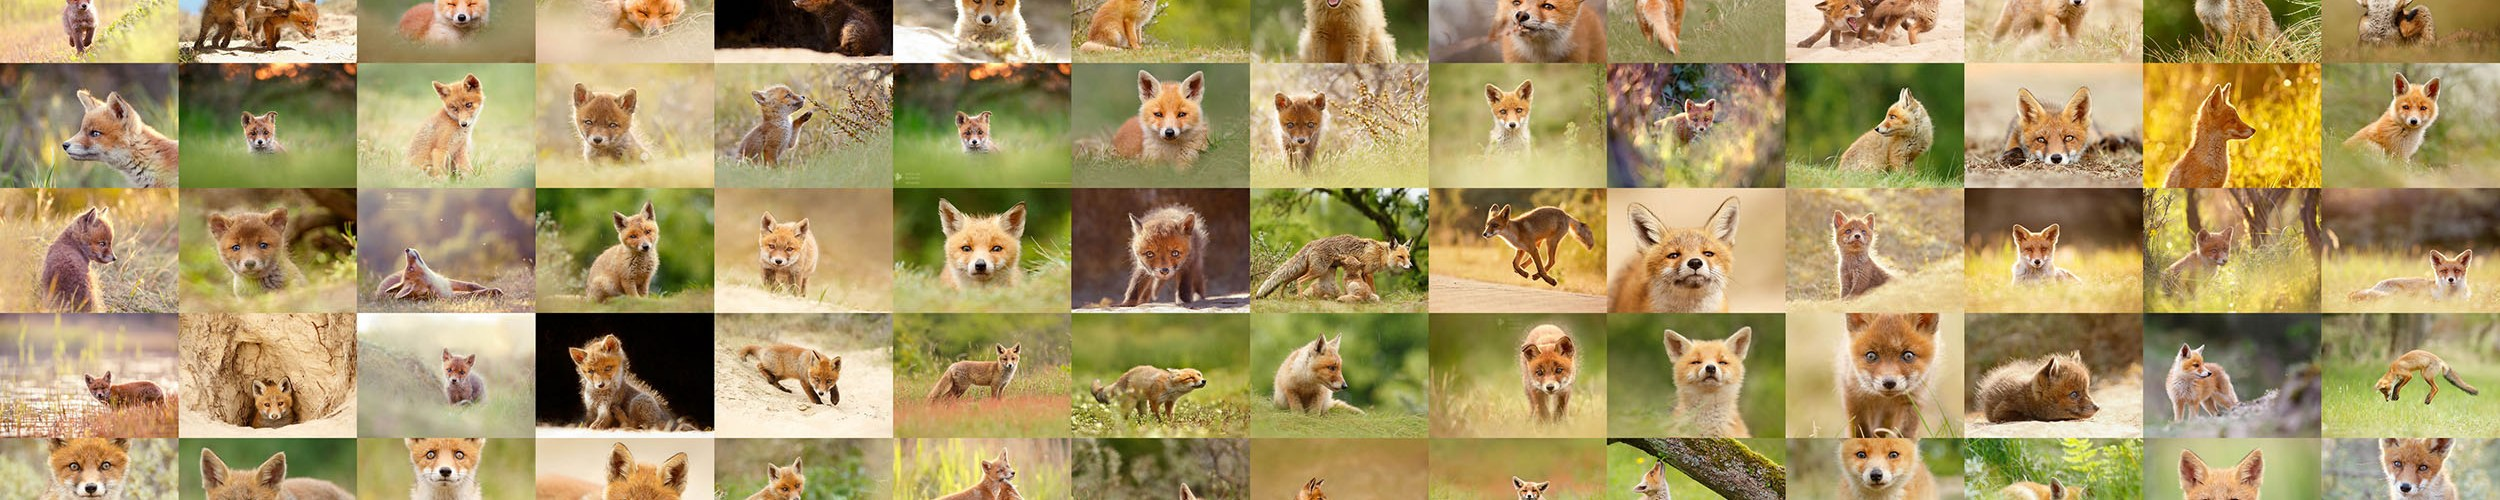 young baby foxes